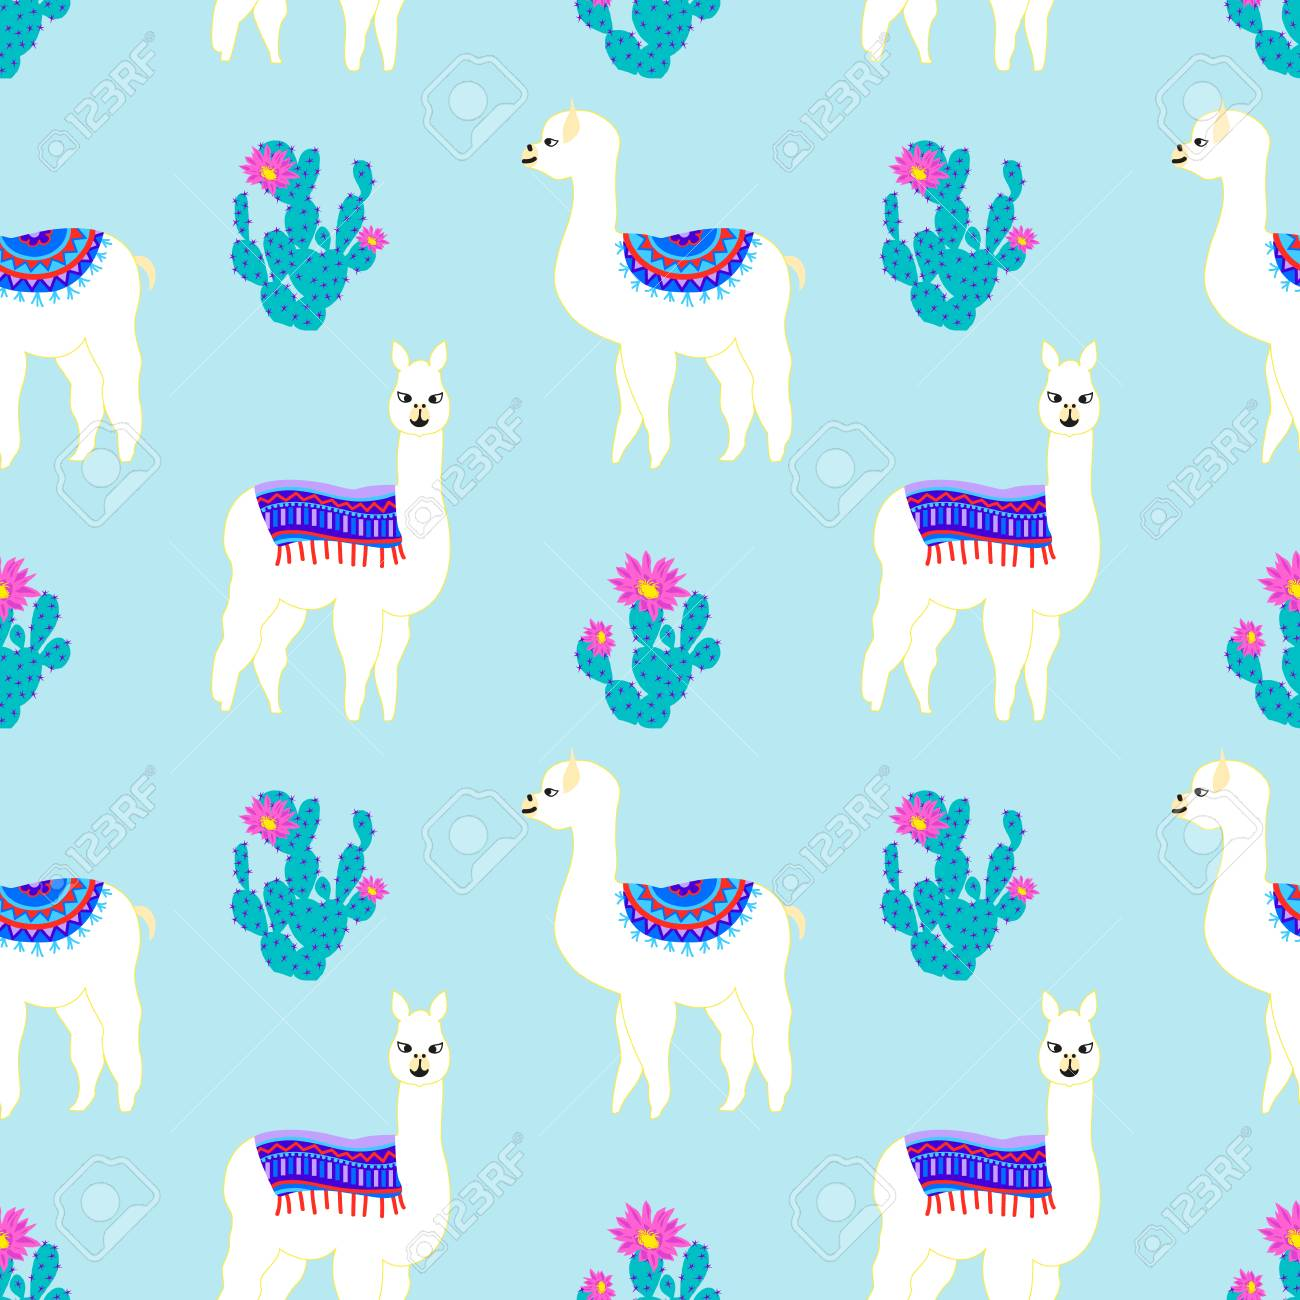 Seamless Pattern With Cute Llama Cactus And Flower Vector 1300x1300